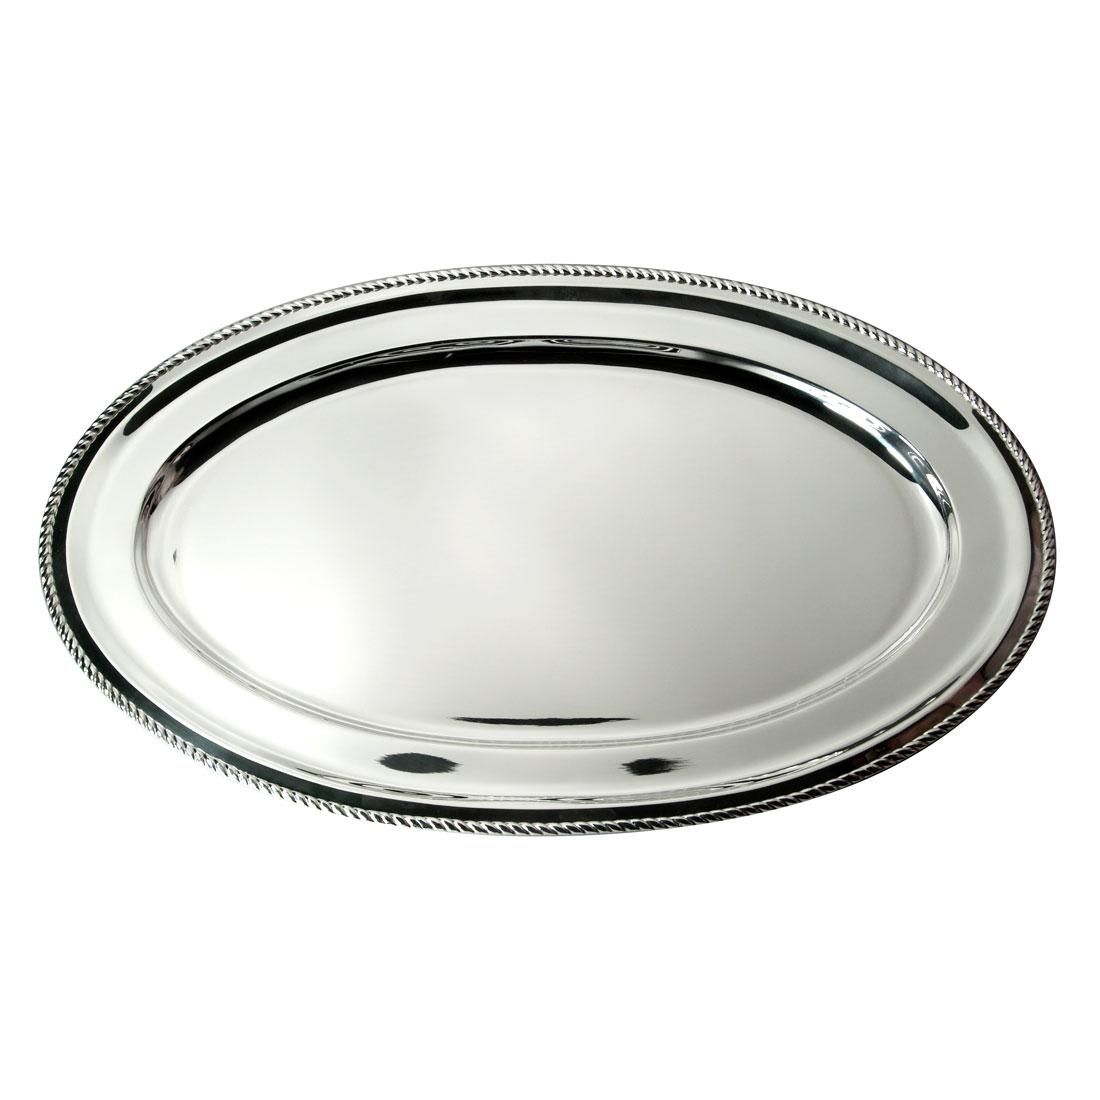 Silver Plate Trays.